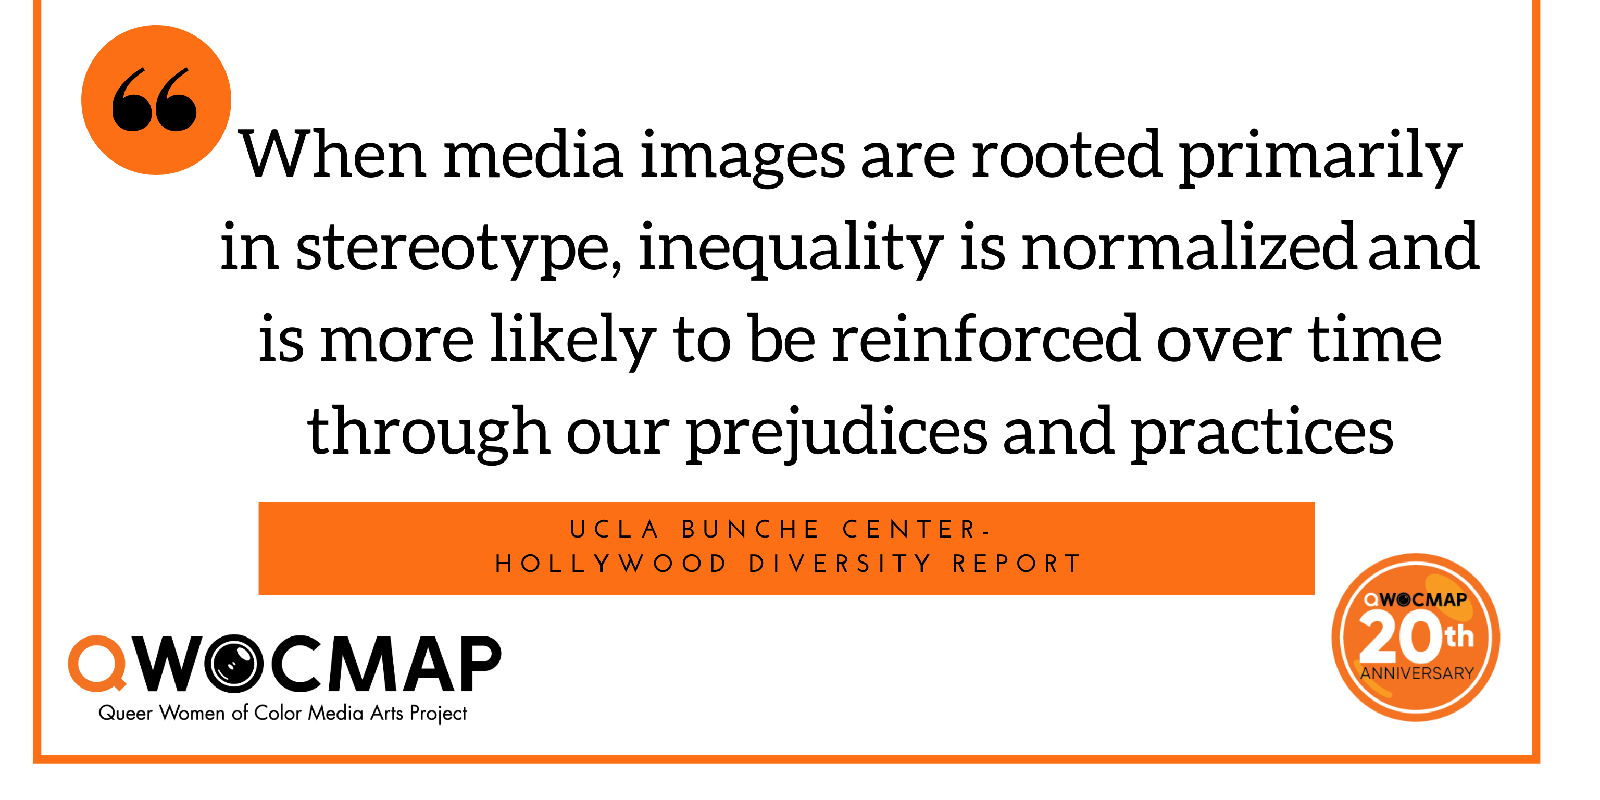 Black quoted text on a white background reads When media images are rooted primarily in stereotype, inequality is normalized and is more likely to be reinforced over time through our prejudices and practices. Below is an orange box with black text that reads UCLA Bunche Center - Hollywood Diversity Report. In the bottom corners are the black and orange QWOCMAP logo and the orange and white QWOCMAP 20th anniversary logo.